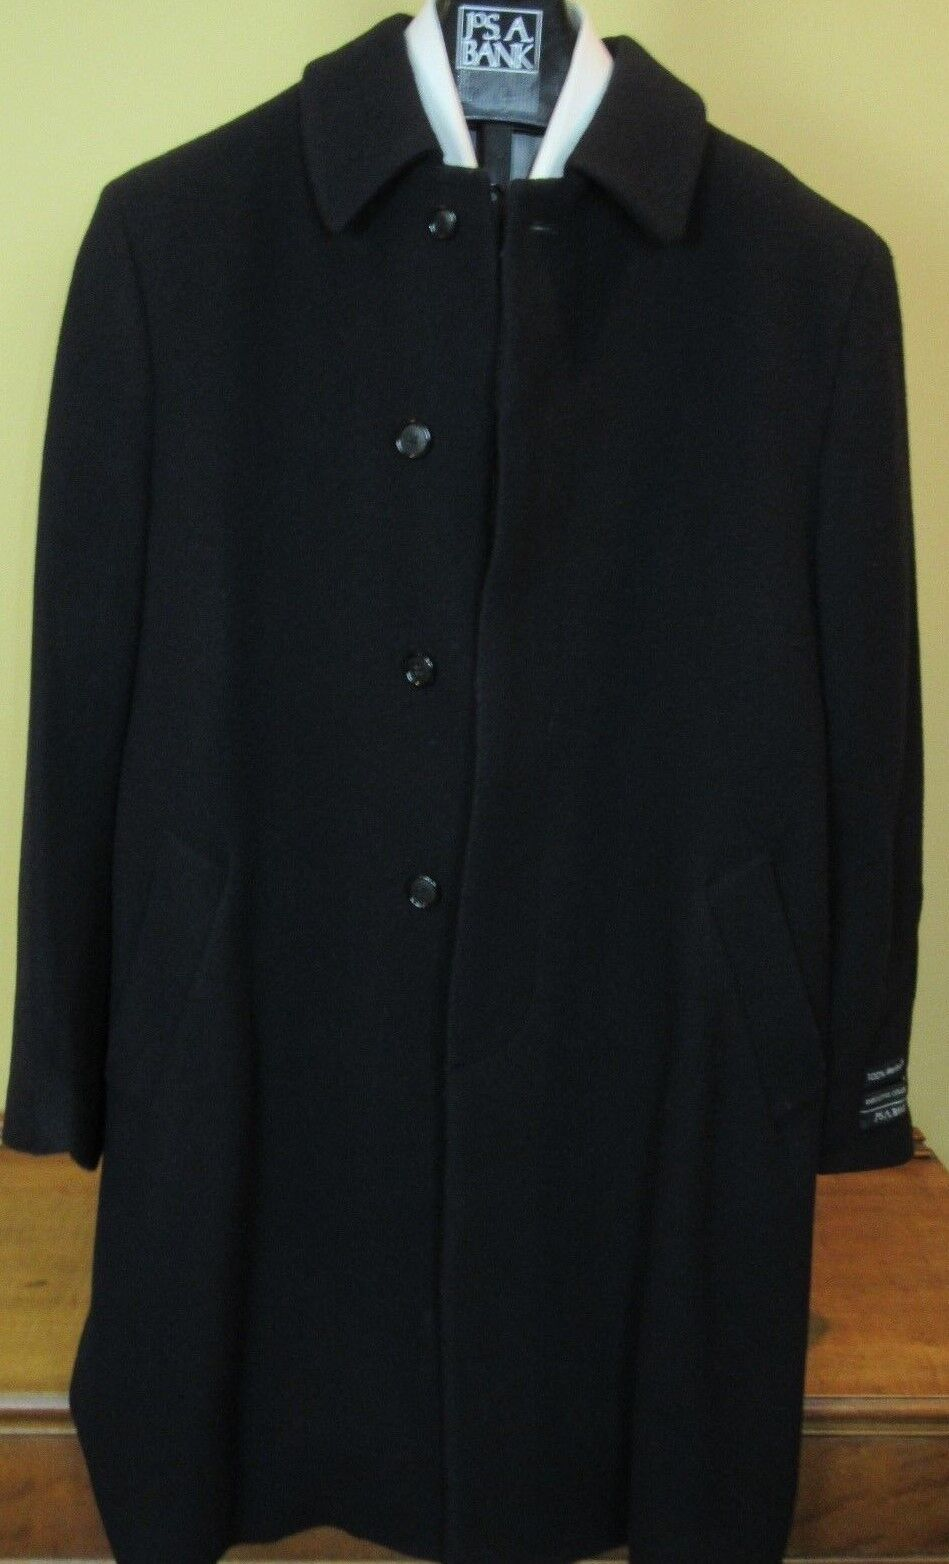 495 New Jos A Bank 100% Merino wool Solid Navy single breasted topcoat  42 L